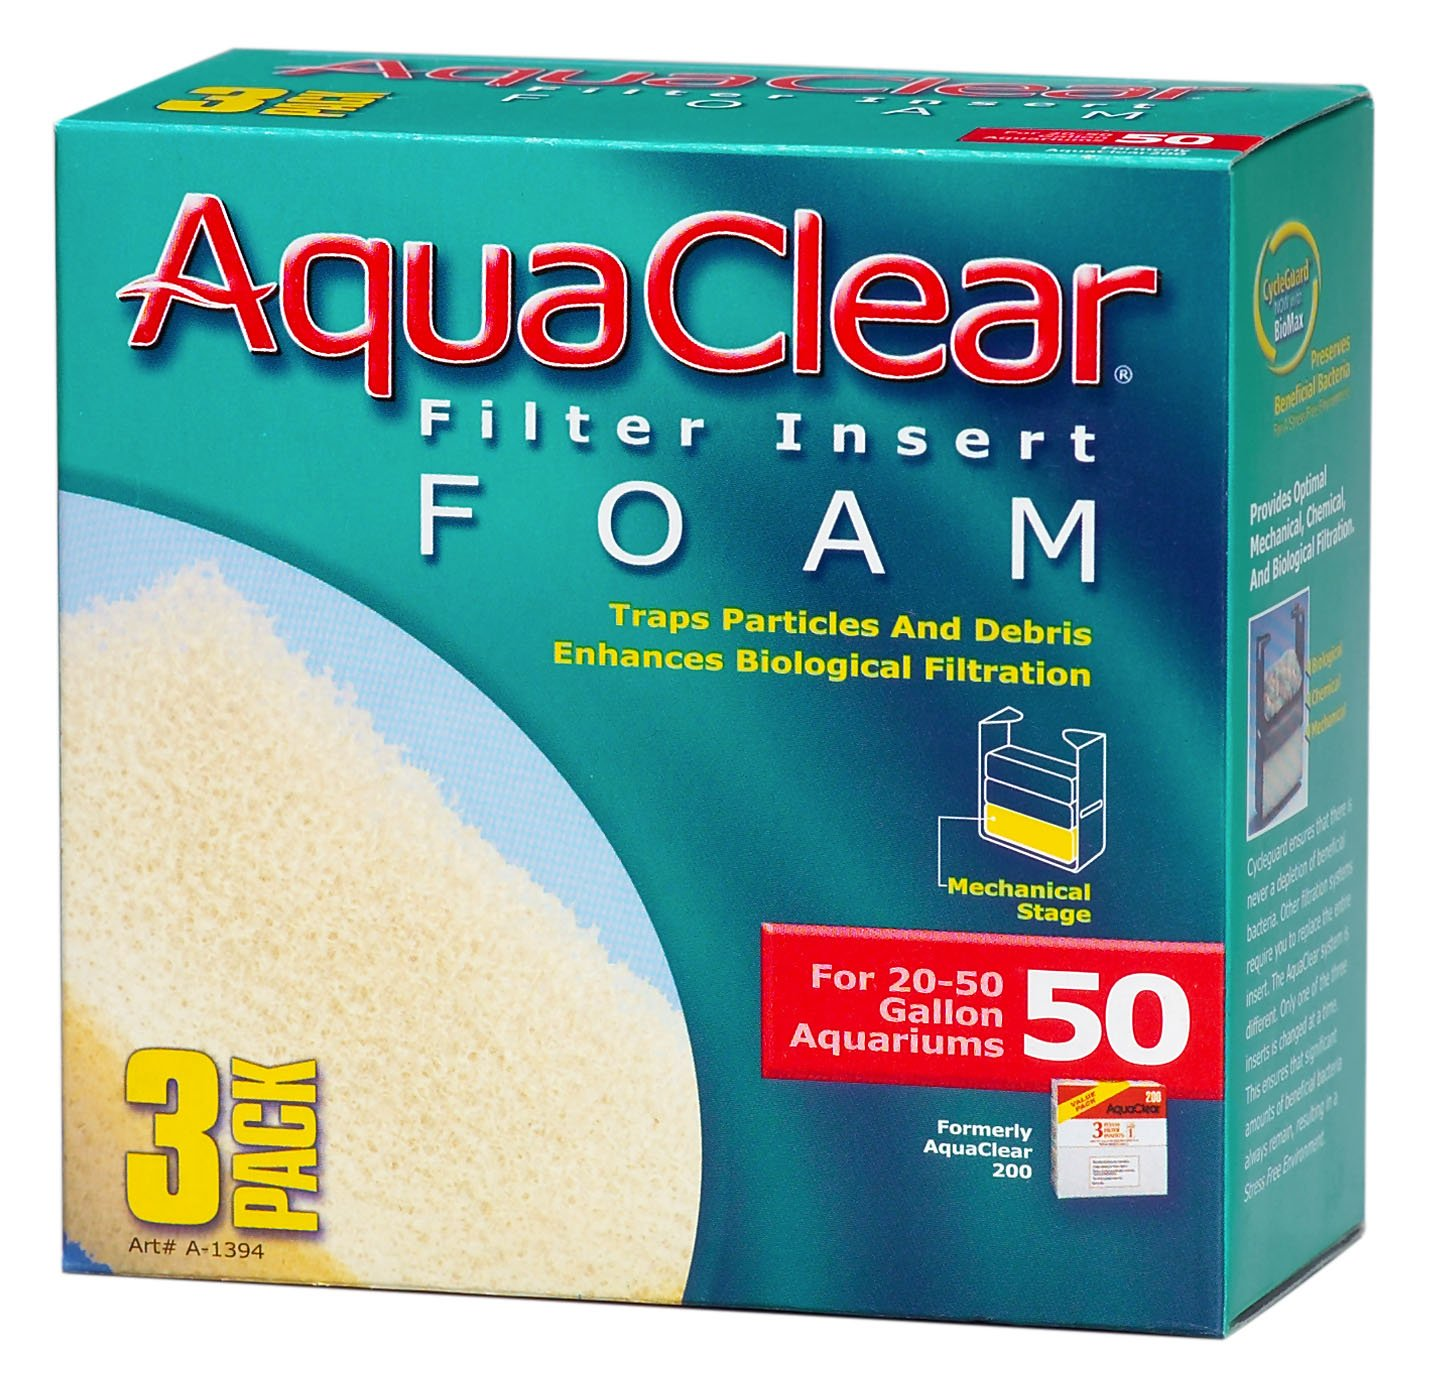 Aquaclear 70-Gallon Foam Inserts, 3-Pack Rolf C. Hagen (USA) Corp. A1396